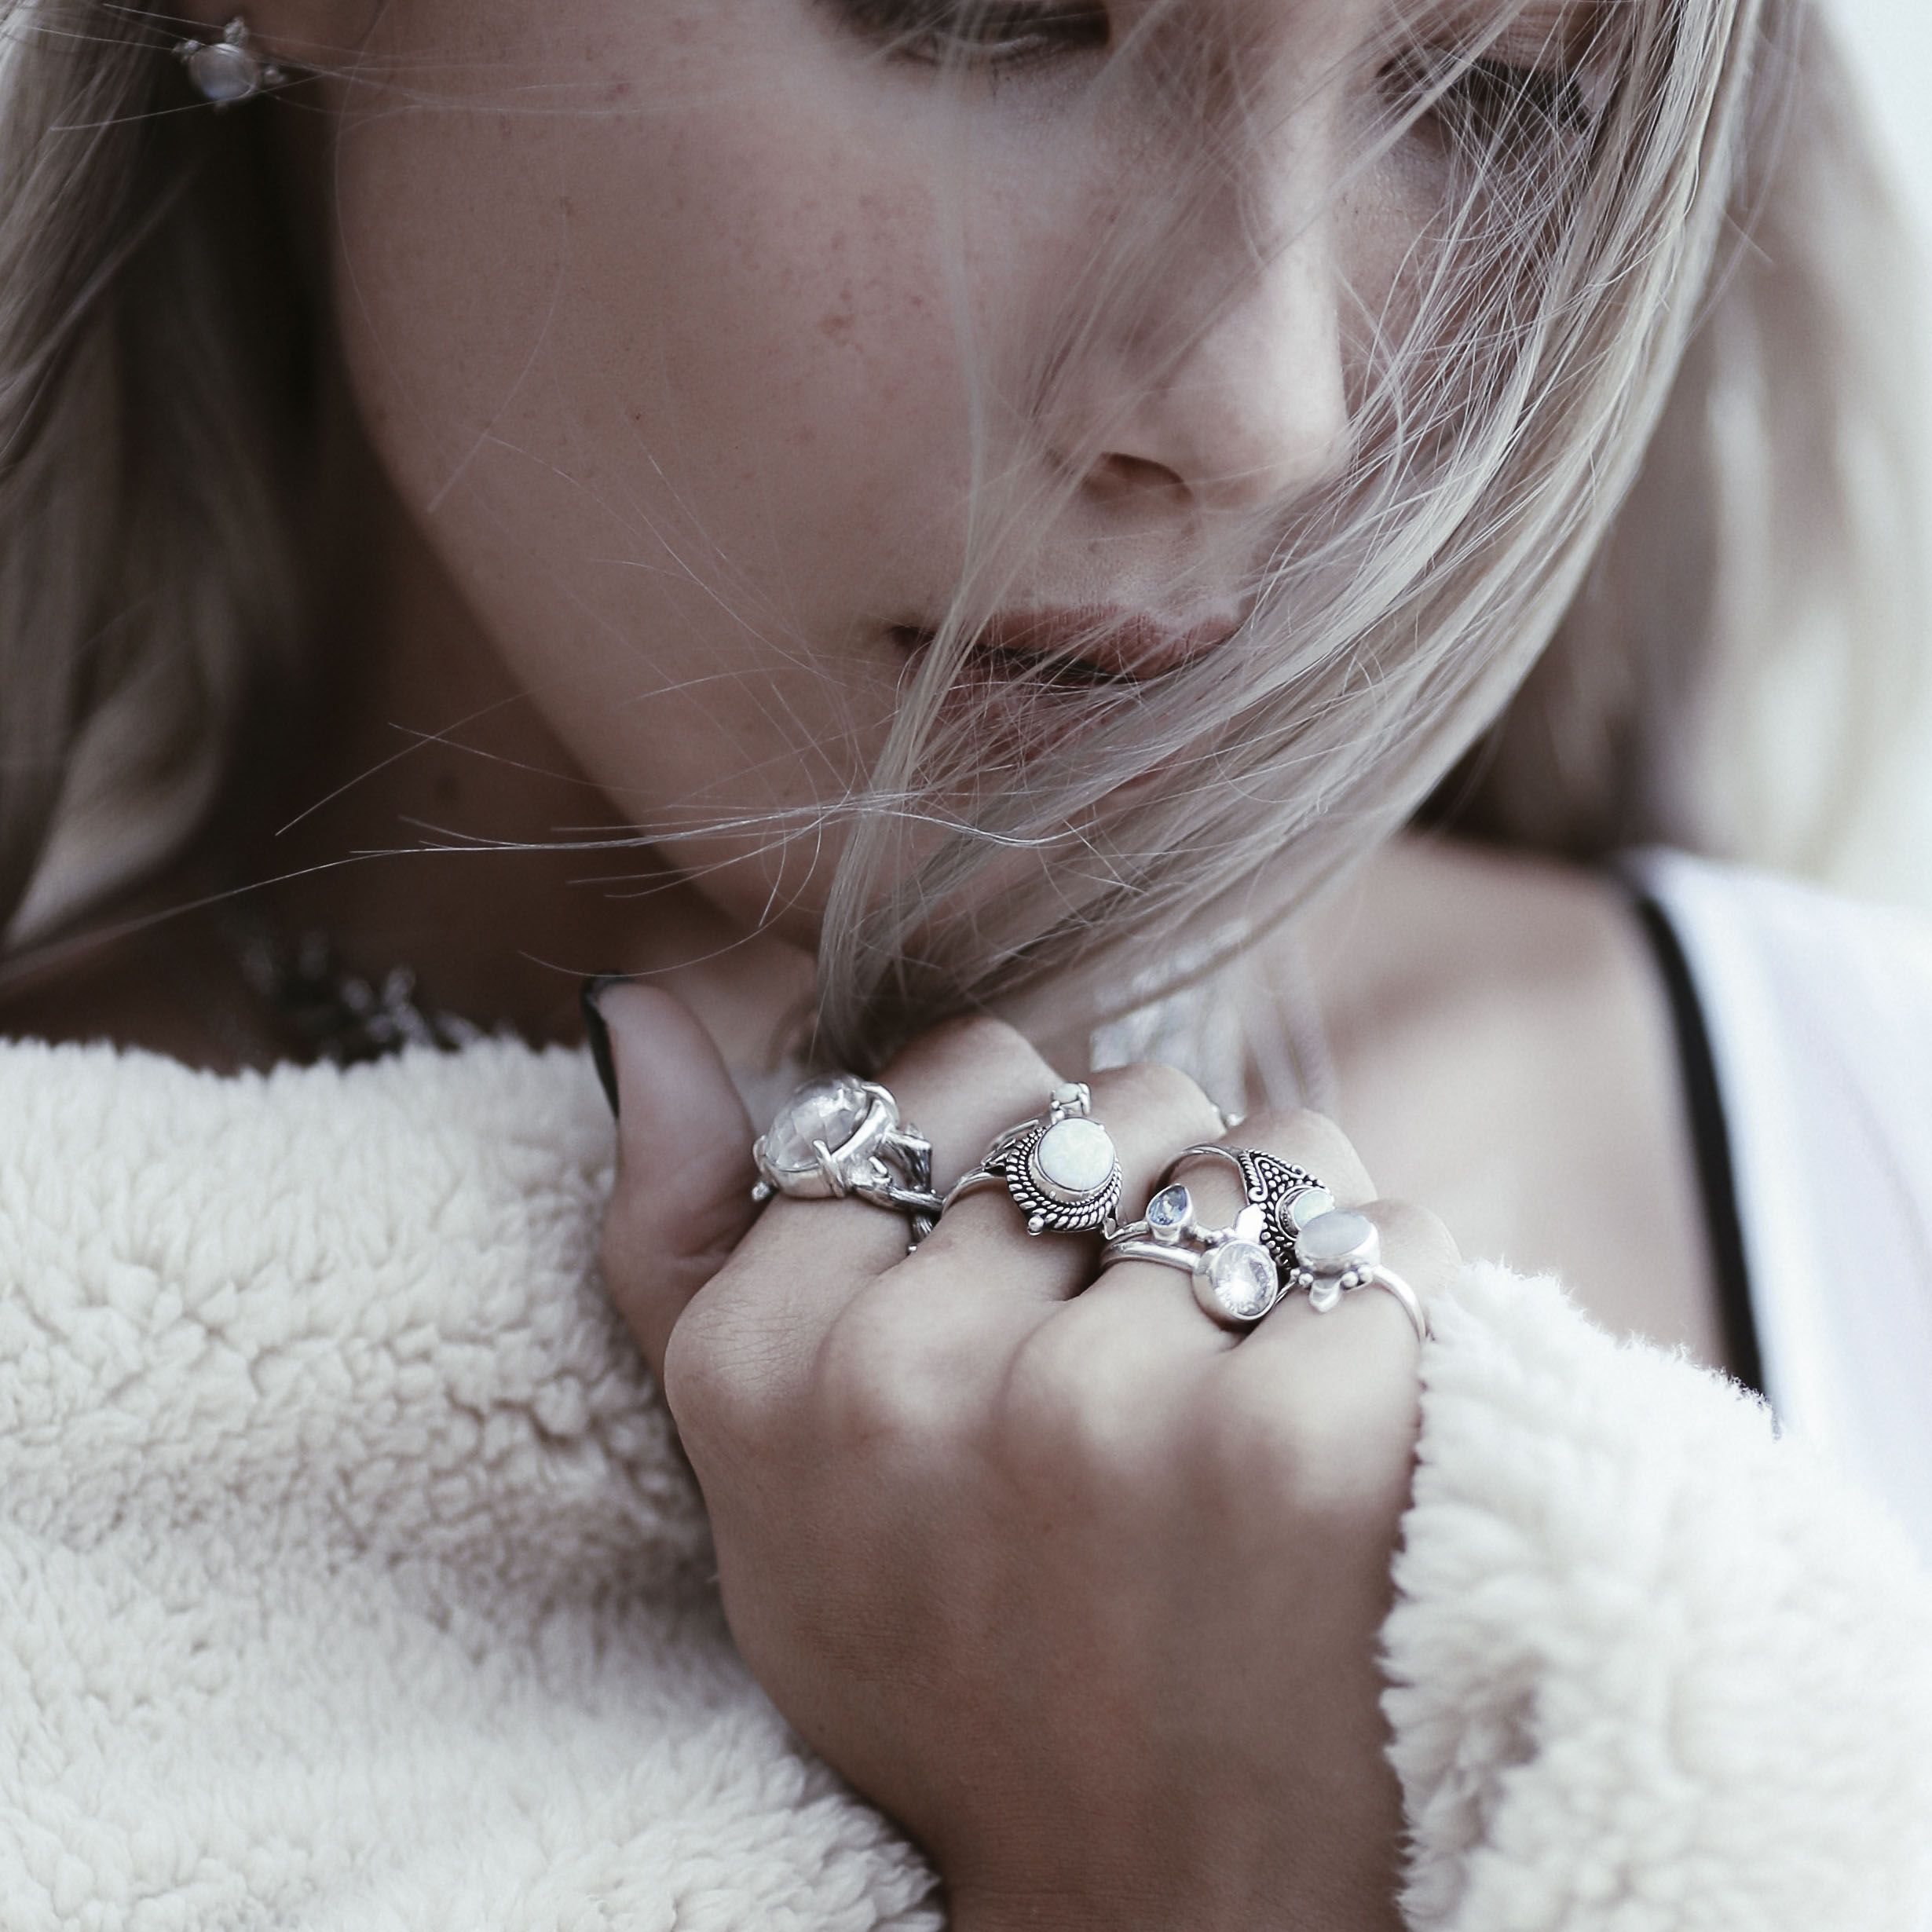 ✧✢✧ ICΣ QUΣΣΠ in store now! ✧✢✧ Our ice beauties have been unleashed as the Ice Queen rules supreme. Embrace the cold mornings and the glacial turn the world has taken with our breathtaking new jewels. ✧✧ Shop the treasures from our Ice Queen's trove at www.shopdixi.com ✧✧ // shopdixi // icequeen // shop dixi // boho // bohemian // winter // ice // hippie // jewellery // jewelry // giftideas // bohochic // winter // ice // snow // moonstone